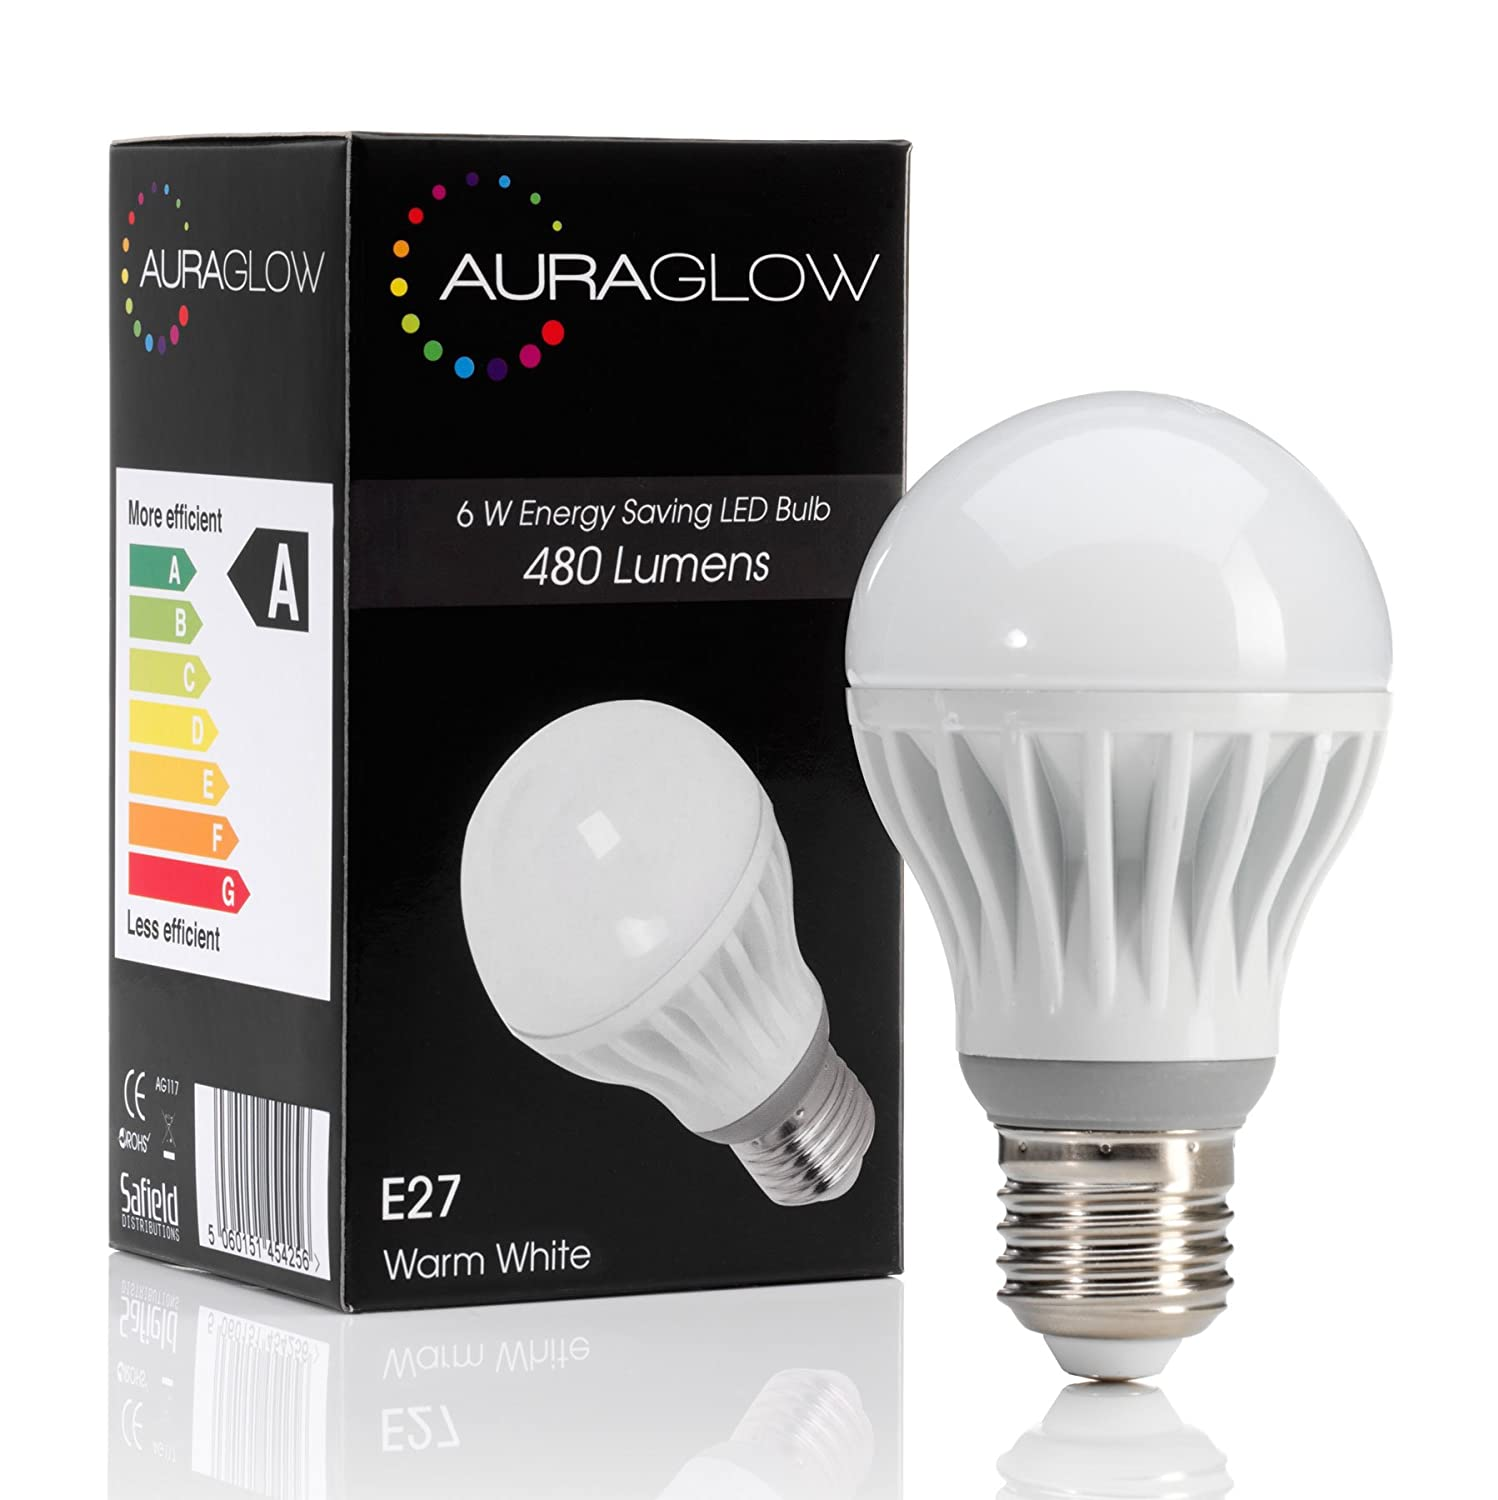 auraglow 6w led e27 screw light bulb warm white 40w equivalent amazoncouk diy u0026 tools